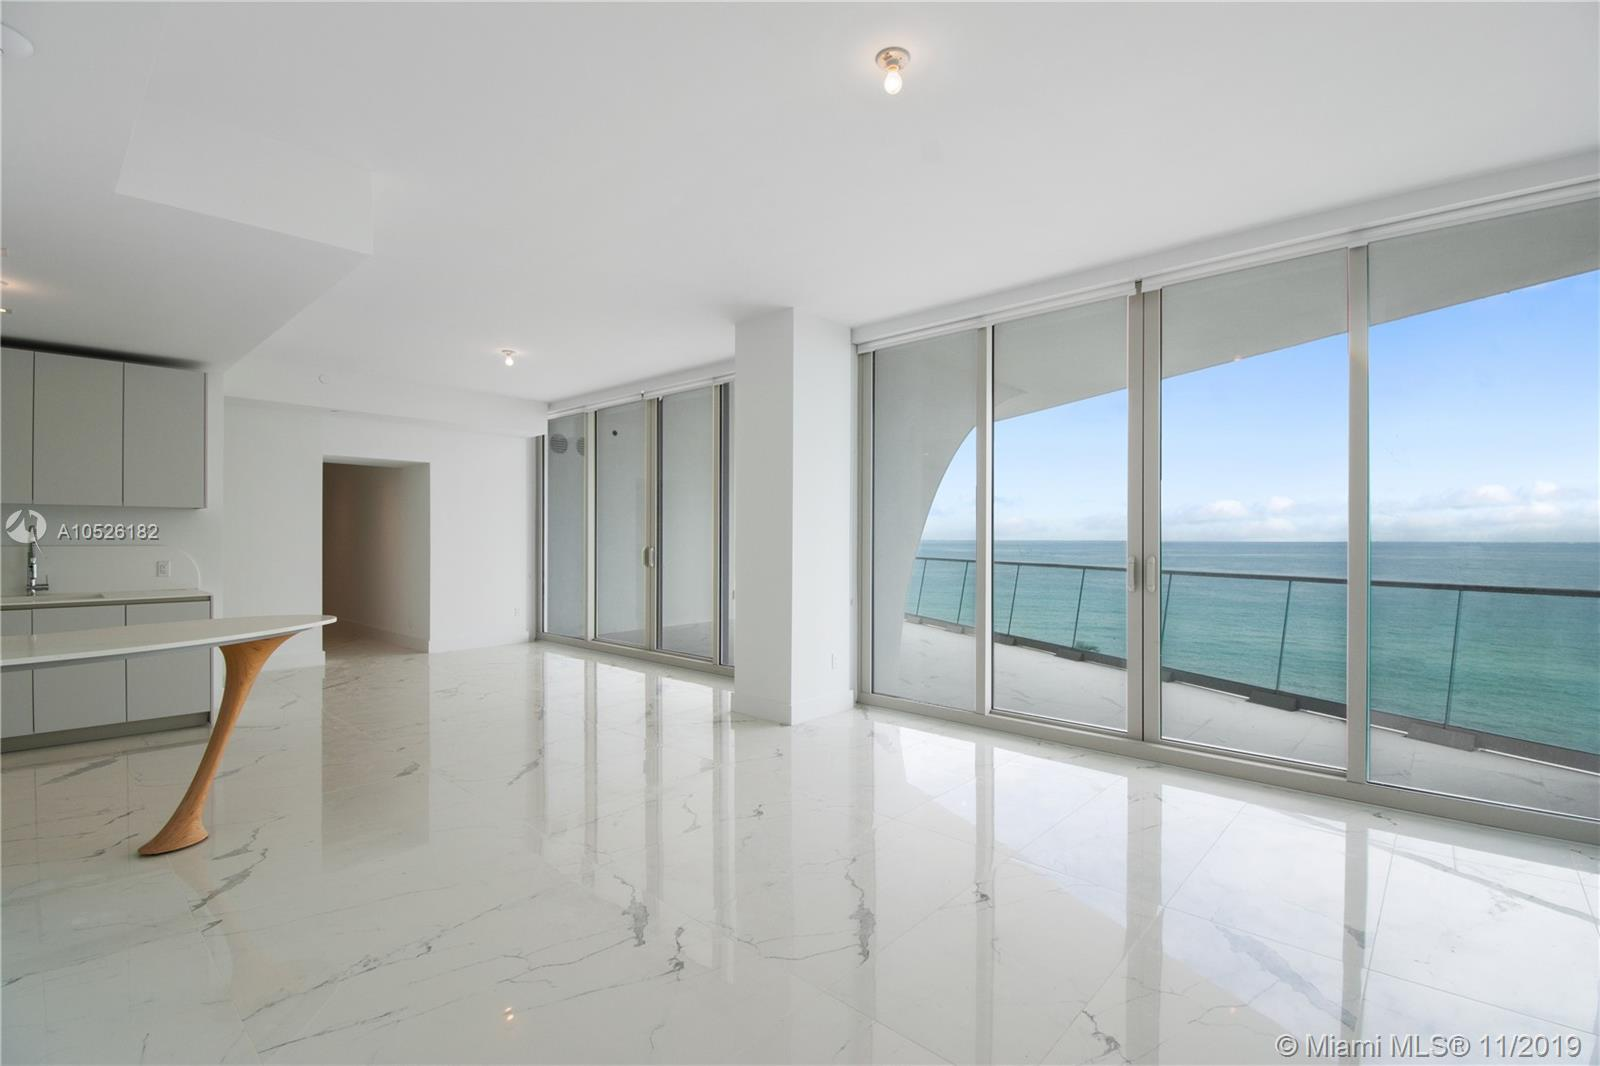 """BRAND NEW IN SUNNY ISLES BEACHFRONT ''JADE SIGNATURE"""" DESIGNED BY PRITZKER PRICE WINNER ARCHITECTS HERZOG AND DE MEURON. THE INTERIORS HAVE BEEN DESIGNED BY THE WORLD RENOWNED PIERRE IVES ROCHON. THIS PREMIER LINE BOASTS UNOBSTRUCTED OCEAN VIEWS & A HUGE OCEANFRONT TERRACE. THE FLOW THRU PLAN ALSO OFFERS CITY LIGHTS + ALTERNATE VIEWS. THIS SPECTACULAR RESIDENCE HAS WHITE MARBLE FLOORS + CUSTOM SHADES THRU-OUT + FLOOR TO CEILING WINDOWS + SOUGHT AFTER FLOOR PLAN 2 BED 2.5 BATH & STATE OF THE ART OPEN KITCHEN + LARGE GREAT ROOM. MOTIVATED SELLER! 3 FULL FLOORS OF COMMON AREAS W/ PIECES FROM HERMES, KAGAN, KNOLL, ROCHON, ETC. AMENITIES INCLUDE: BREAKFAST CAFE, BUSINESS CENTER, , BEACH BAR & GRILL, TATA HARPER SPA W/ STEAM, HAMMAN, SALON & WATER THERAPY TERRACE. PILATE'S STUDIO."""